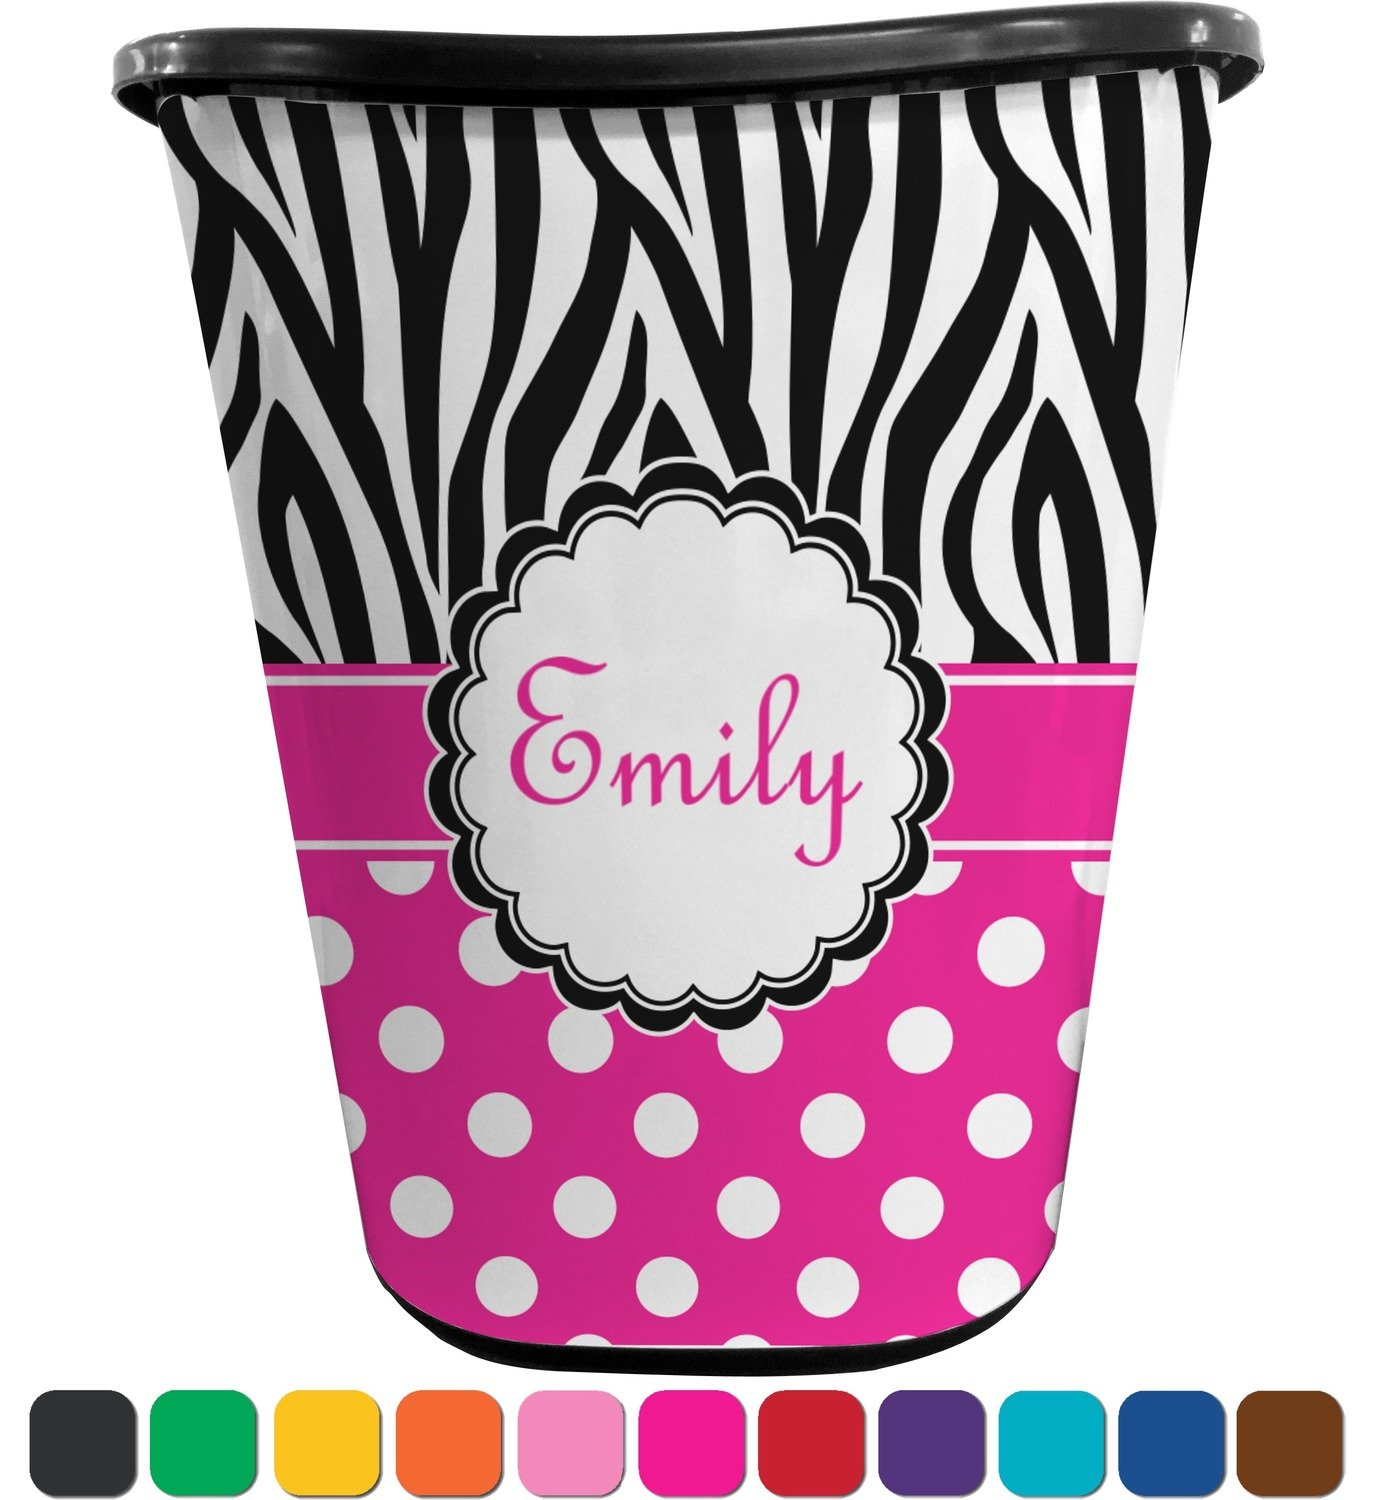 RNK Shops Zebra Print & Polka Dots Waste Basket - Single Sided (Black) (Personalized)